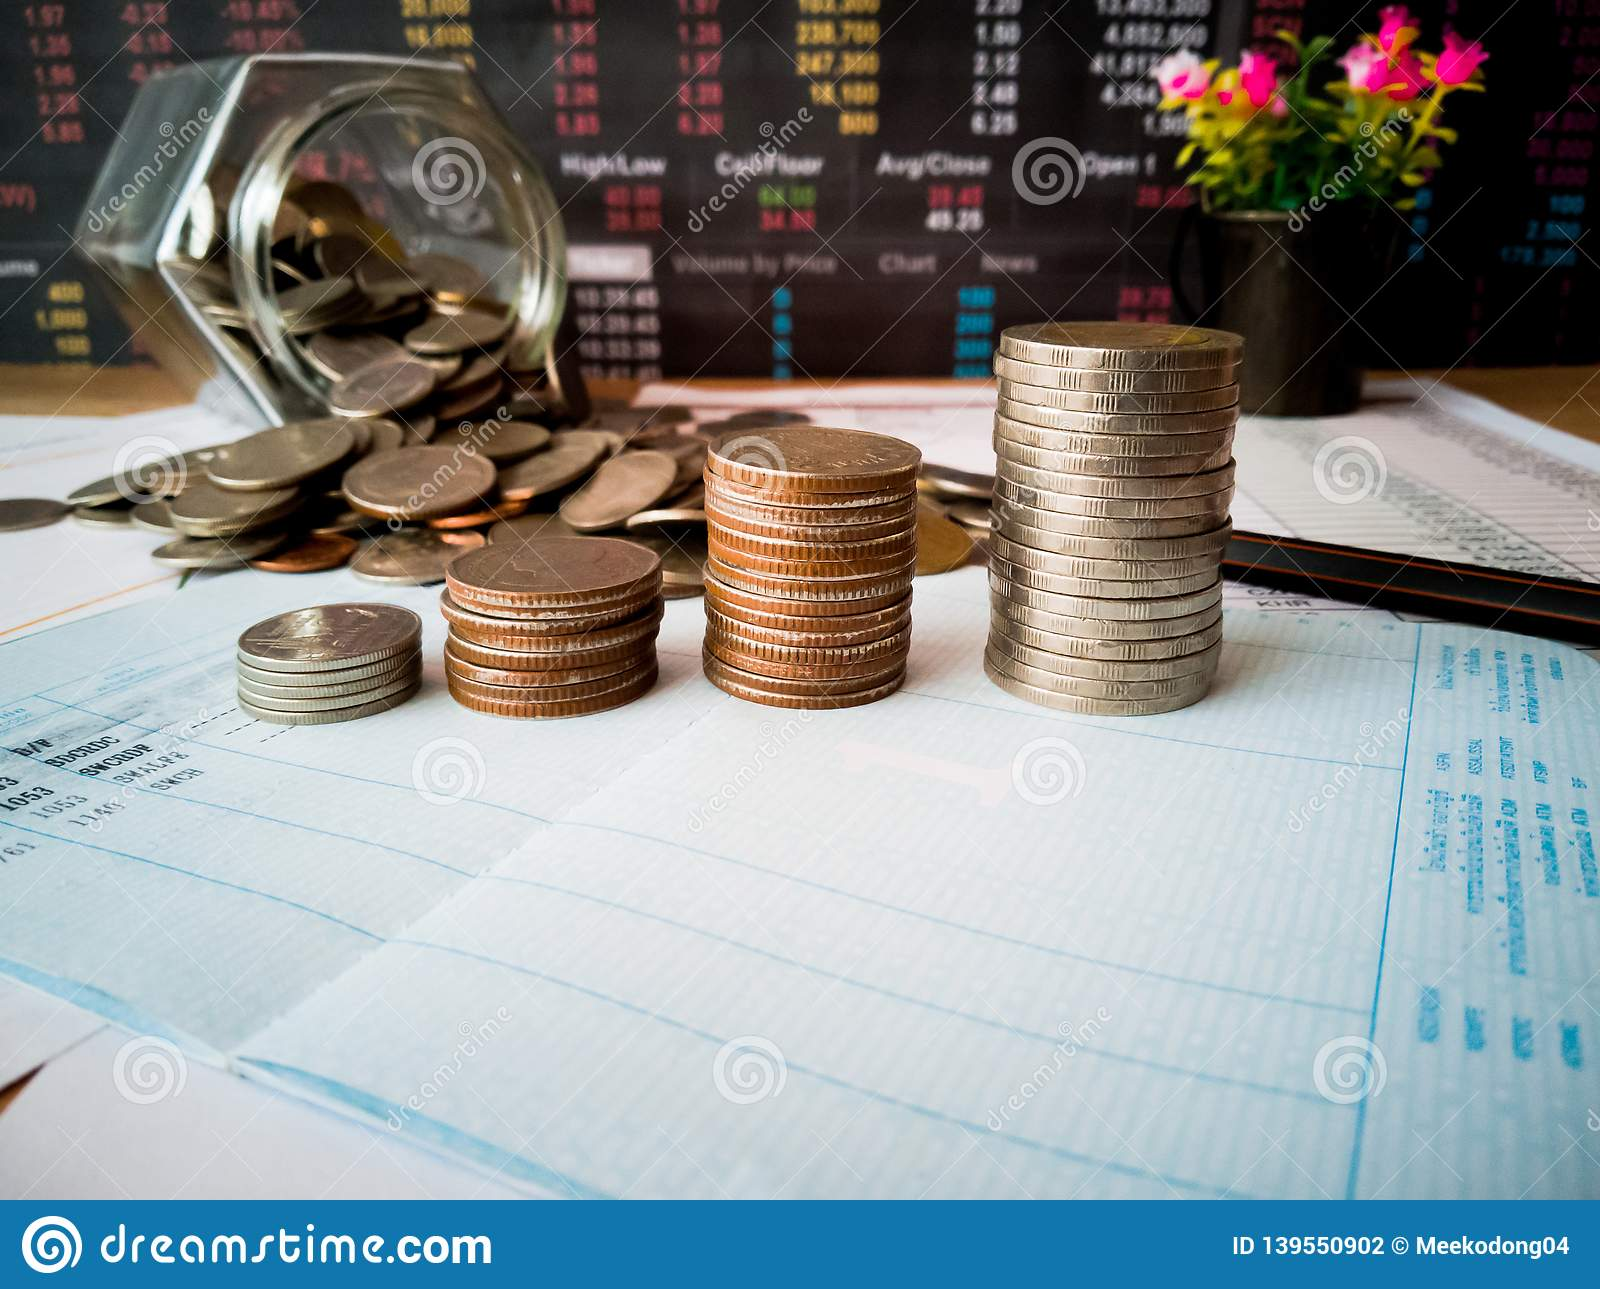 Financial growth and investment profits with financial concepts